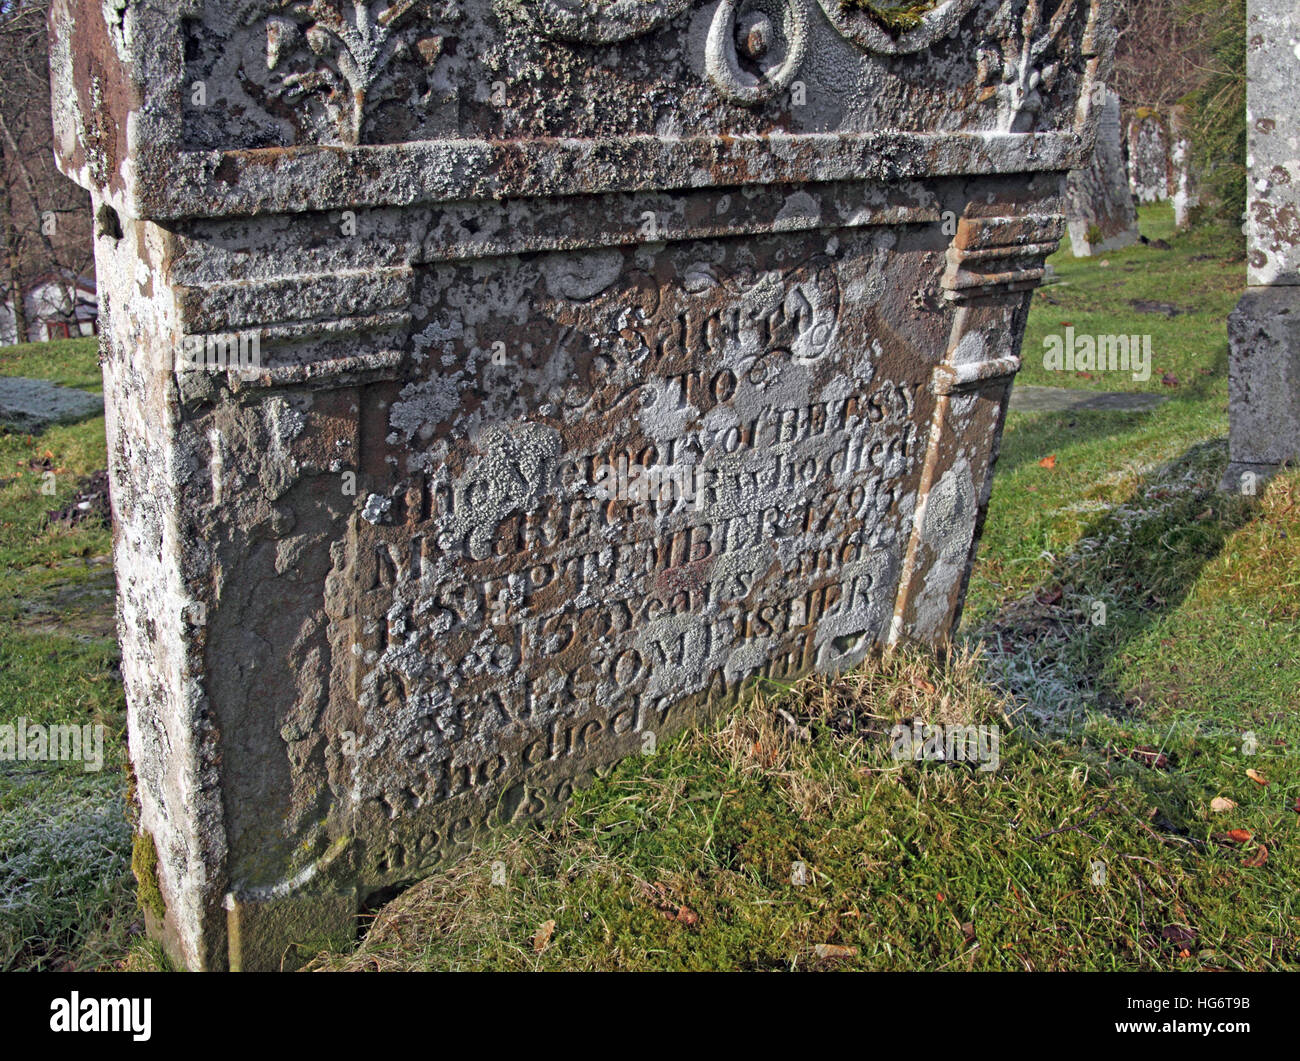 Inverlochlarig Beg,Balquhidder,Sterling,Scotland,UK,Inverlochlarig,Beg,Robert,Rob,Roy,RobRoy,MacGregor,Raibeart,Ruadh,MacGriogair,countryside,rural,grave,burial,place,burial place,headstone,GoTonySmith,@HotpixUK,Tony,Smith,UK,GB,Great,Britain,United,Kingdom,Scotish,Scottish,Scotch,British,Scotland,Alba,problem,with,problem with,issue with,tourist,tour,travel,visit,famous,hero,martyr,tourism,beautiful,SNP,Scottish National Party,independance,independent,independence,wild,culture,Scots,Scots Culture,Scottish Culture,Historic,history,Historic Scotland,stone,stones,bones,Balquidder,film,Buy Pictures of,Buy Images Of,Images of,Stock Images,Tony Smith,United Kingdom,Great Britain,British Isles,Scottish Nationalism